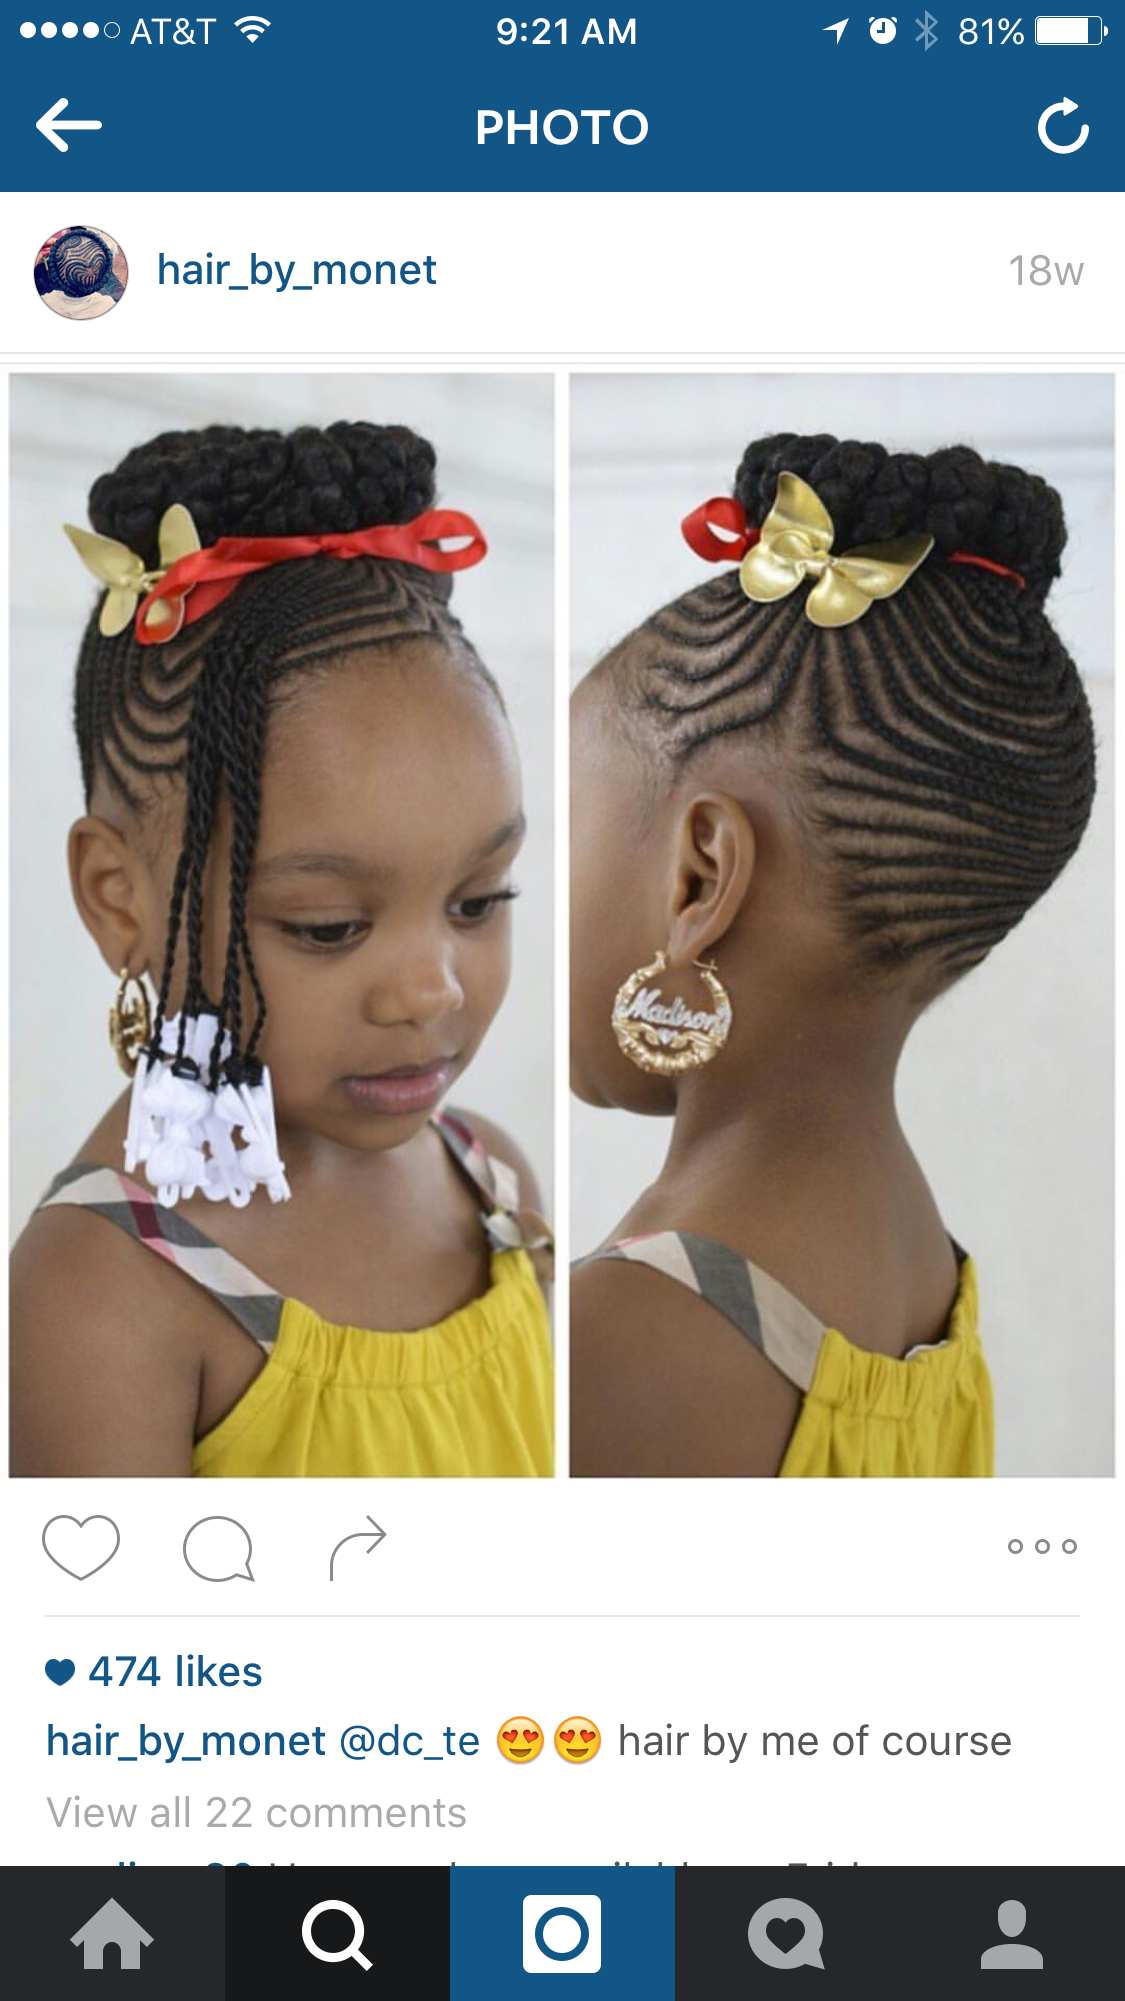 Bamboo earrings and hairstyle for Dani